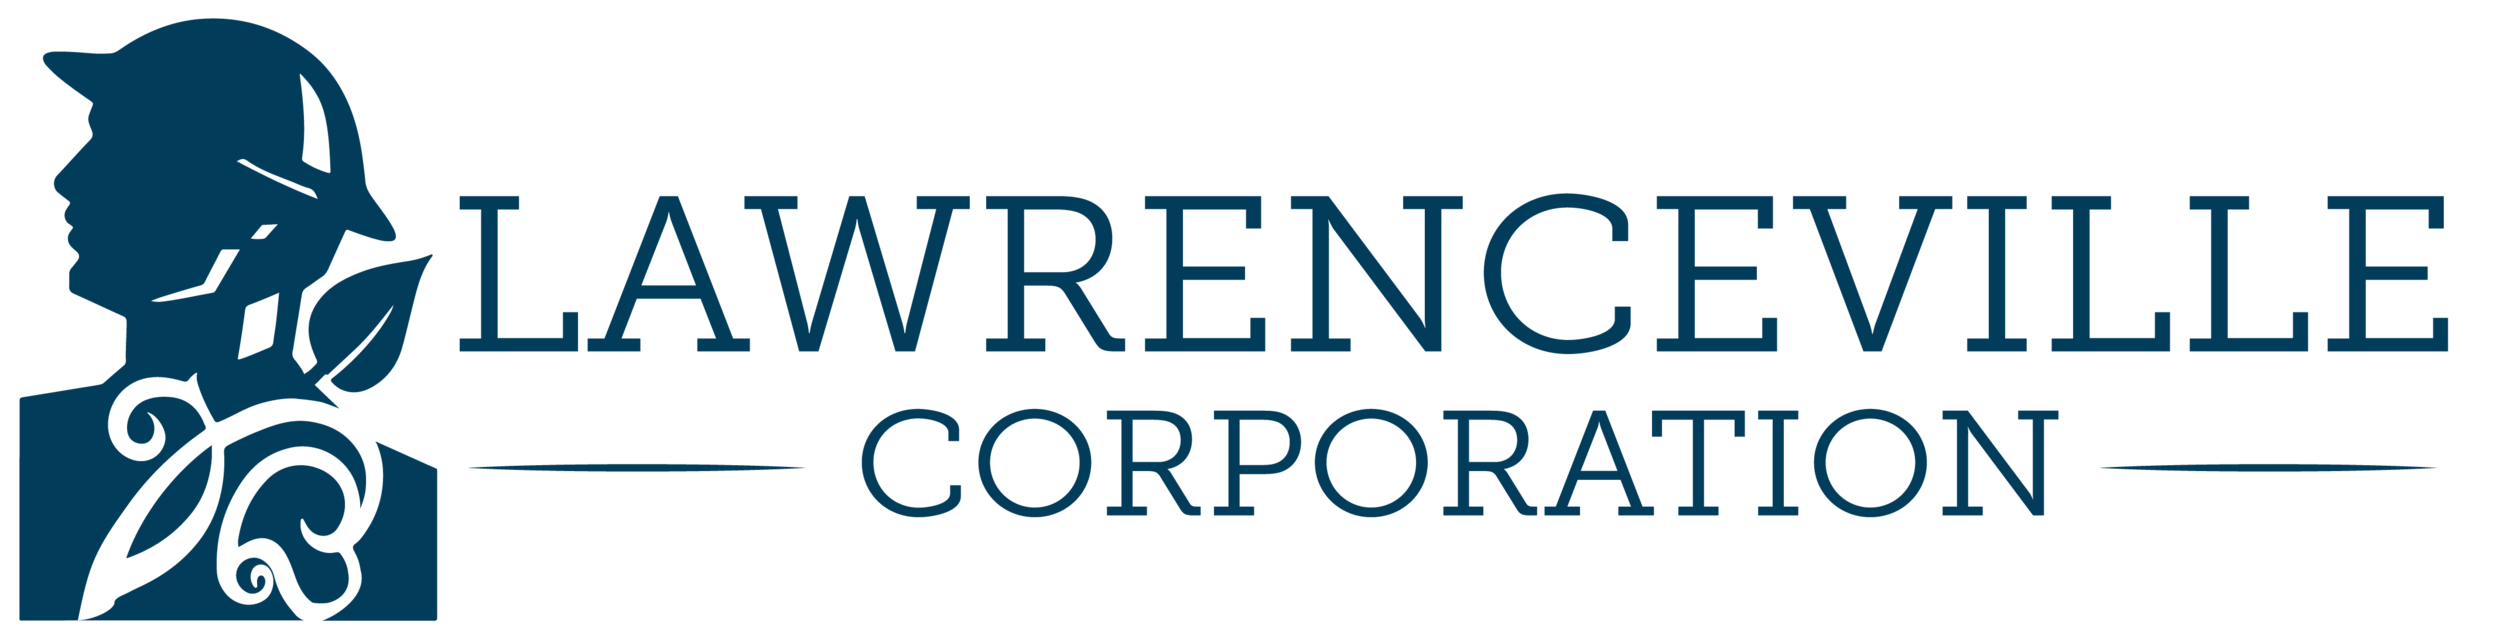 Lawrenceville Corp Logo.png